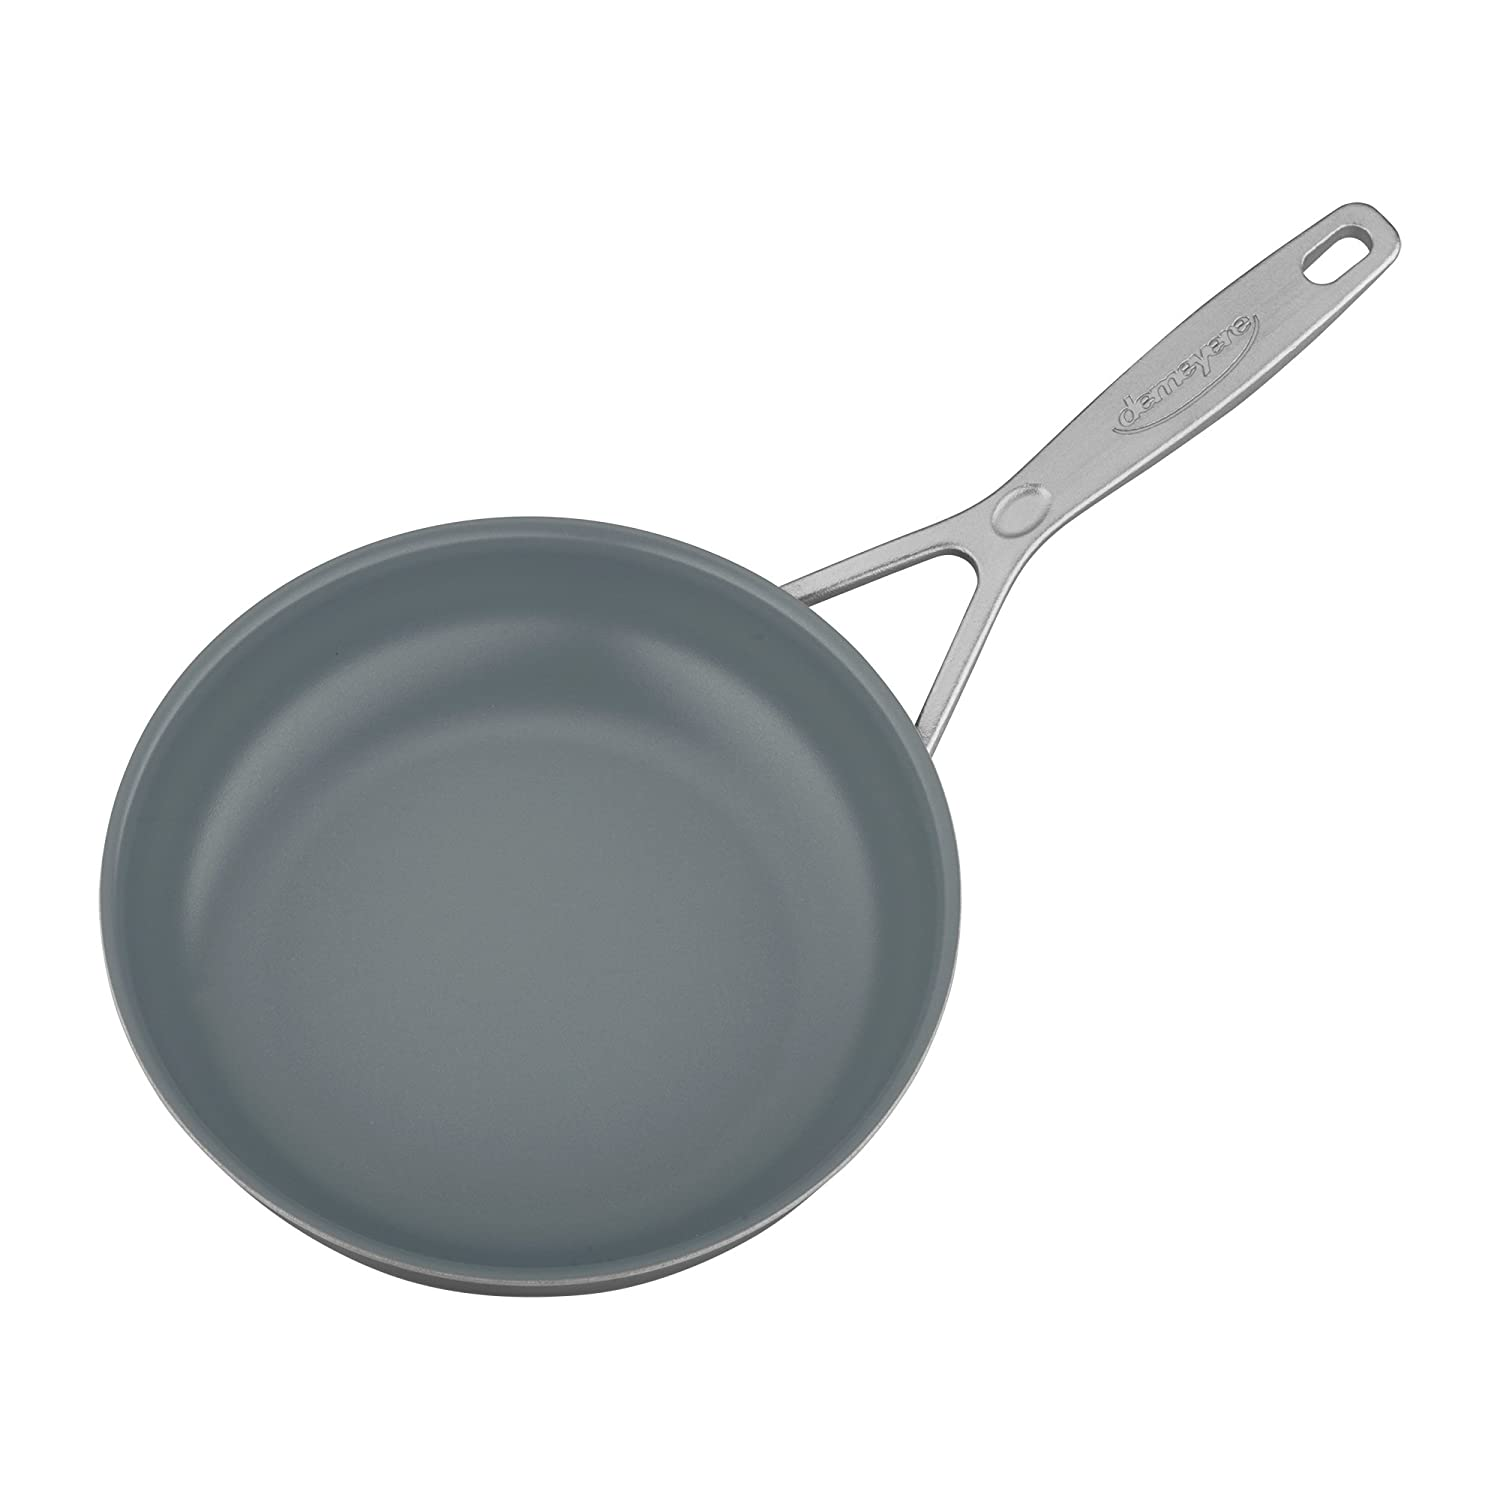 Demeyere Industry 5-Ply 9.5 Stainless Steel Ceramic Nonstick Fry Pan